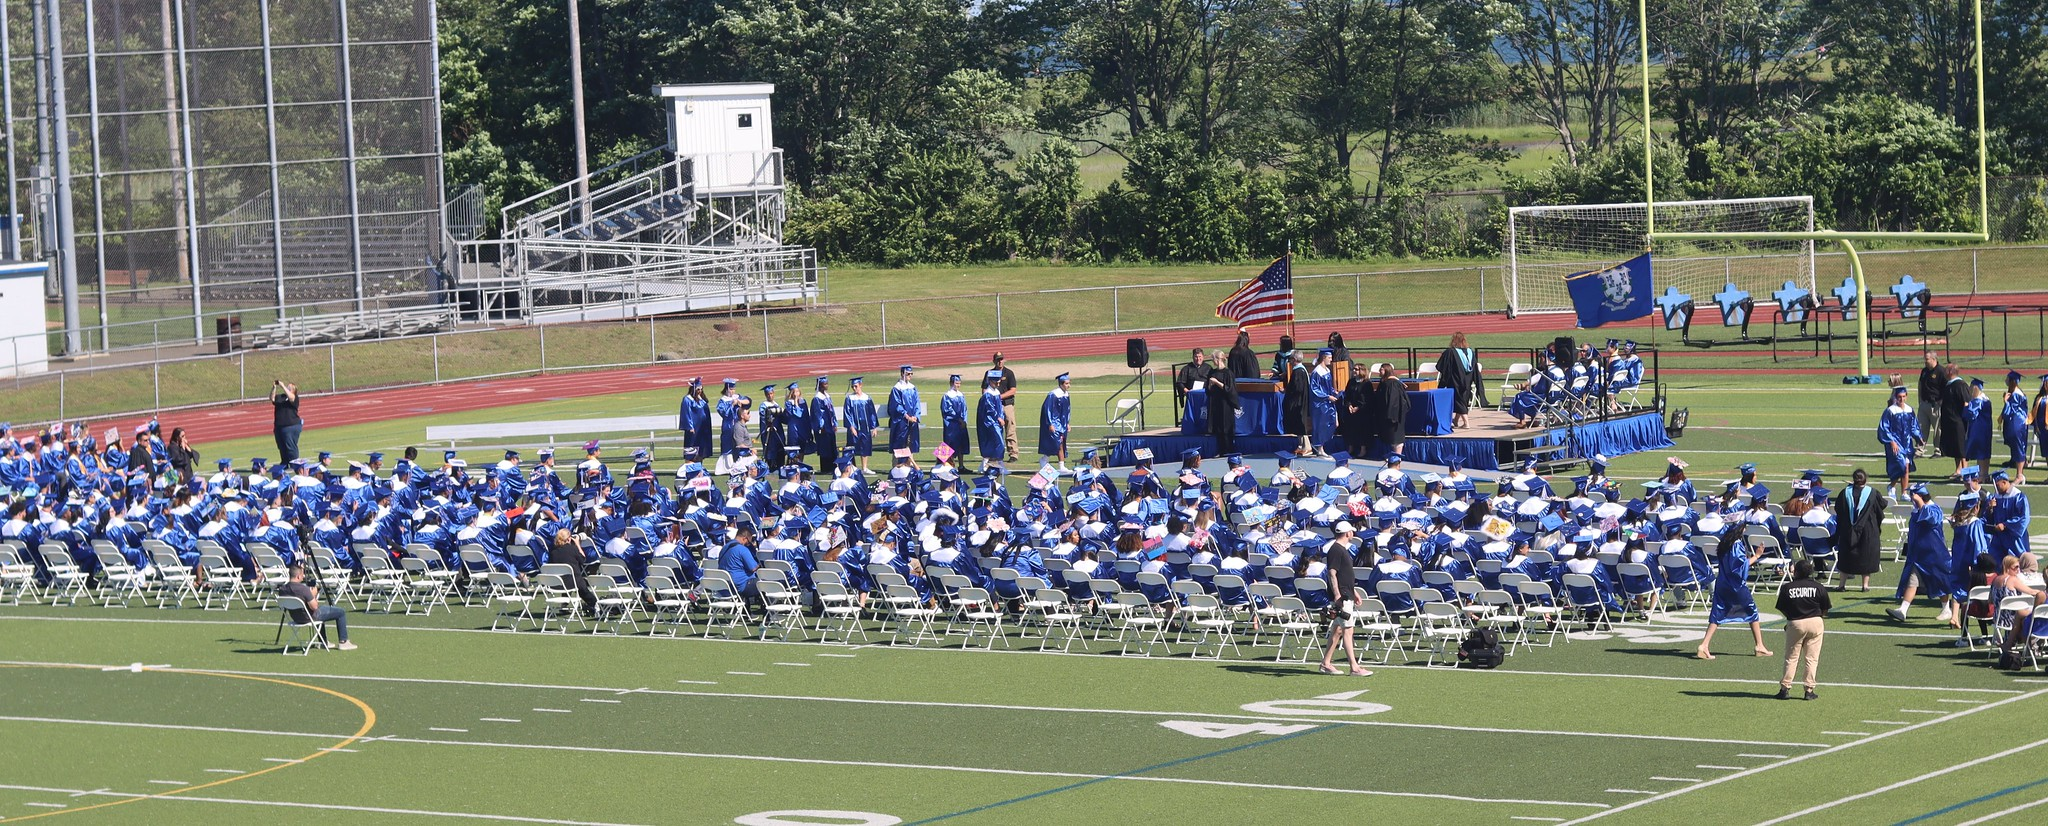 WHHS' newest alums